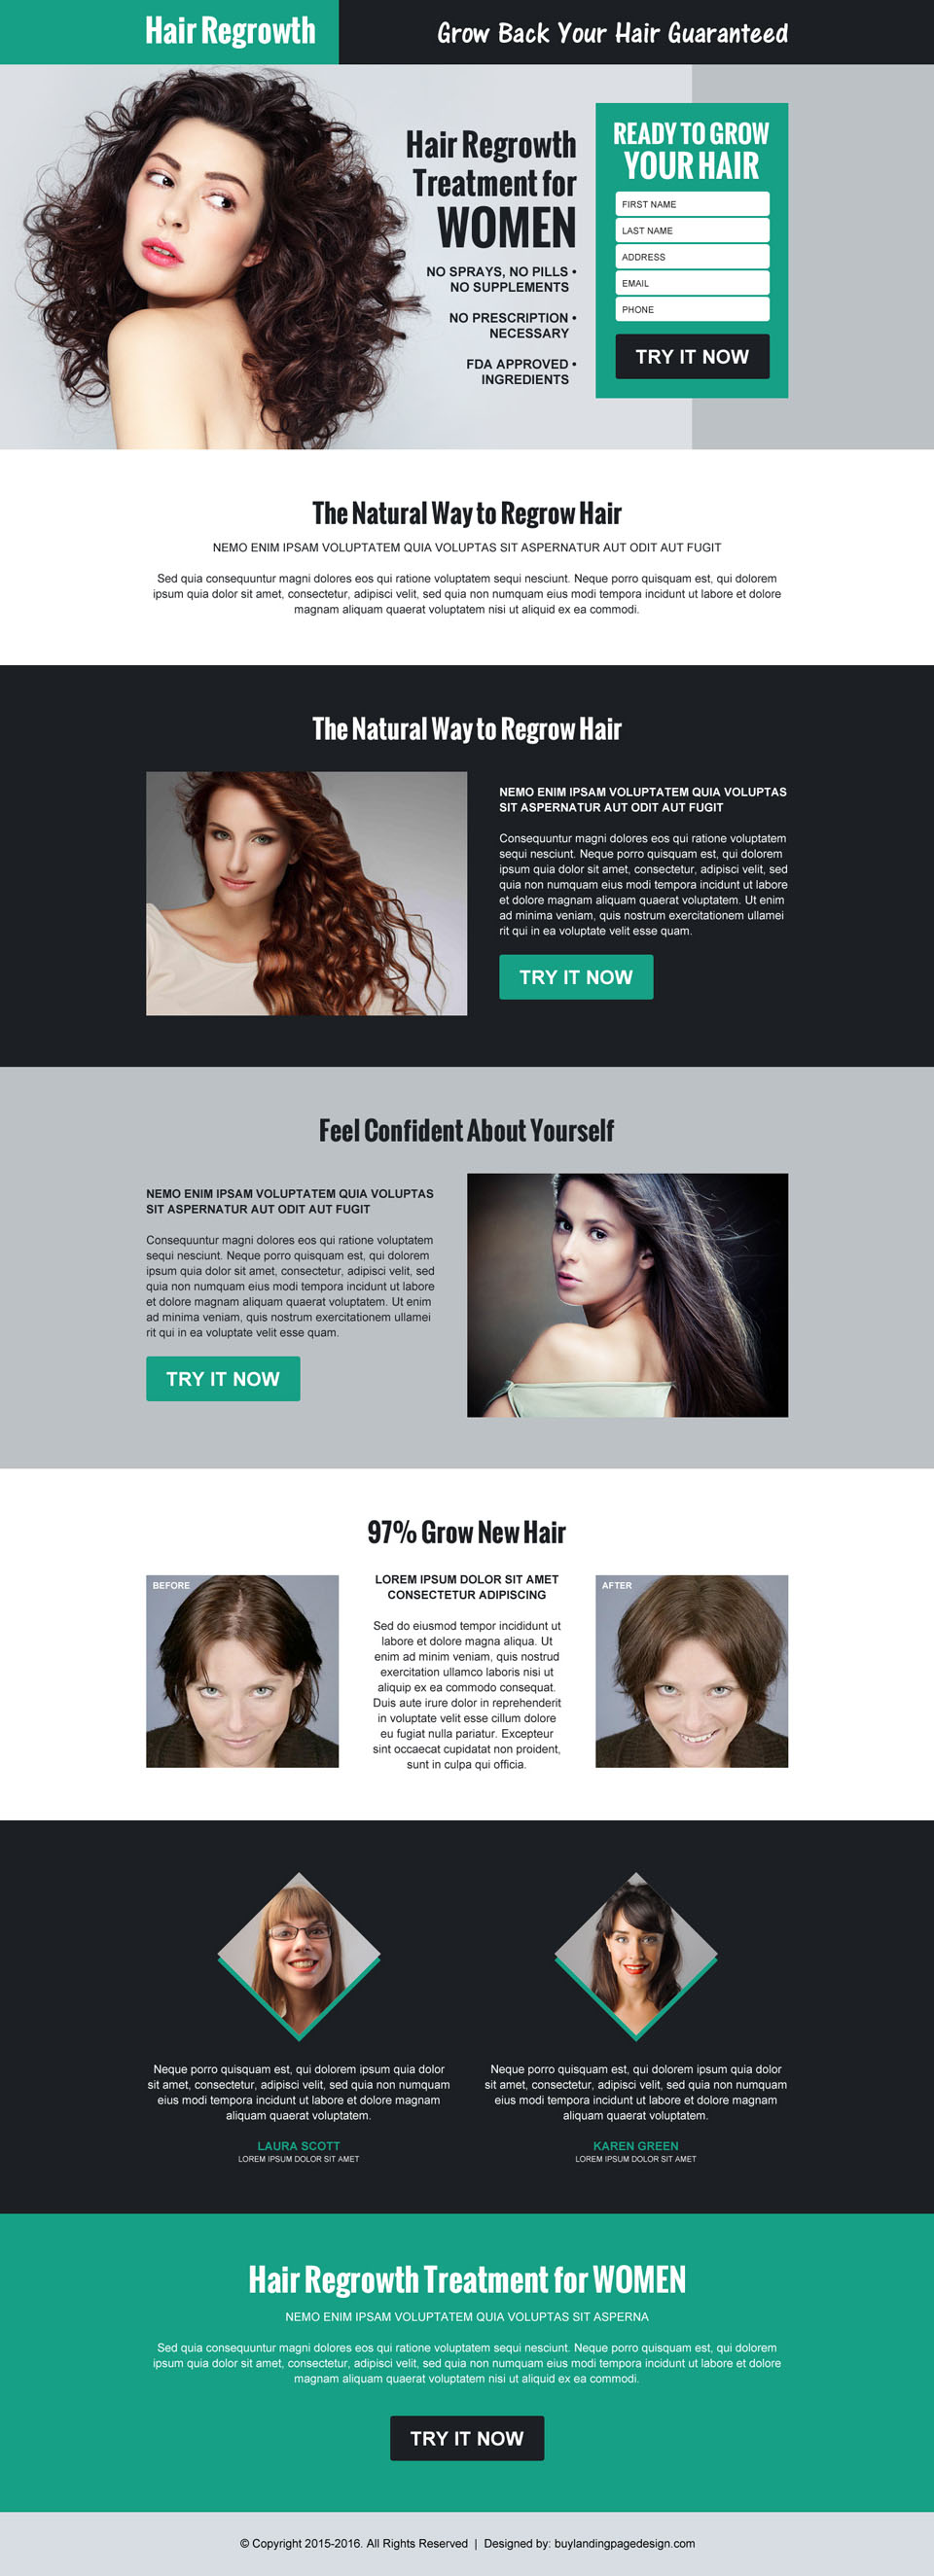 hair-regrow-product-selling-lead-generation-landing-page-design-019